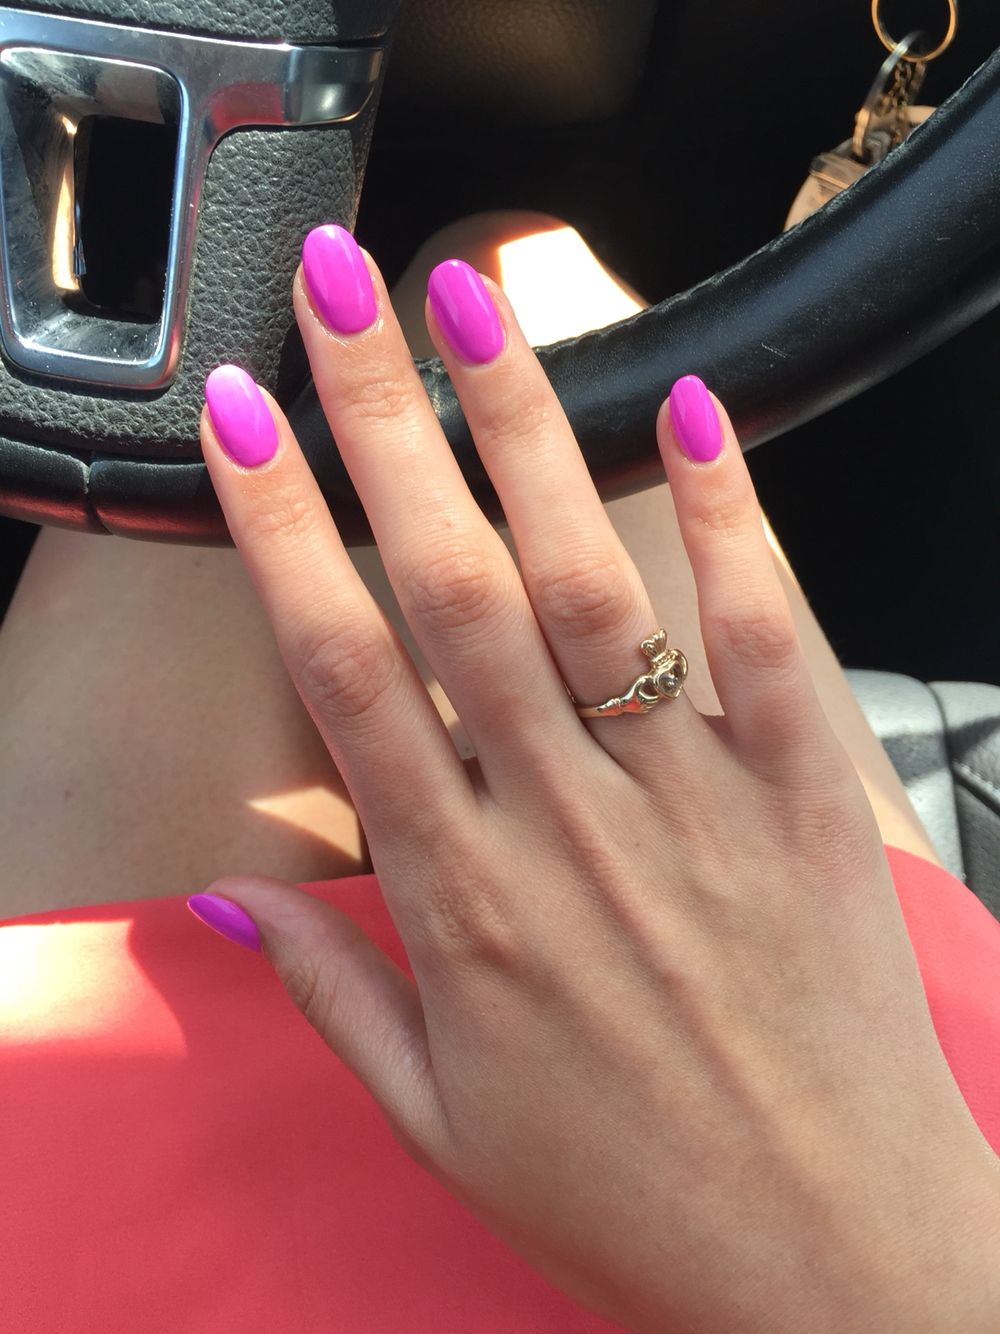 Hot pink round acrylic nails